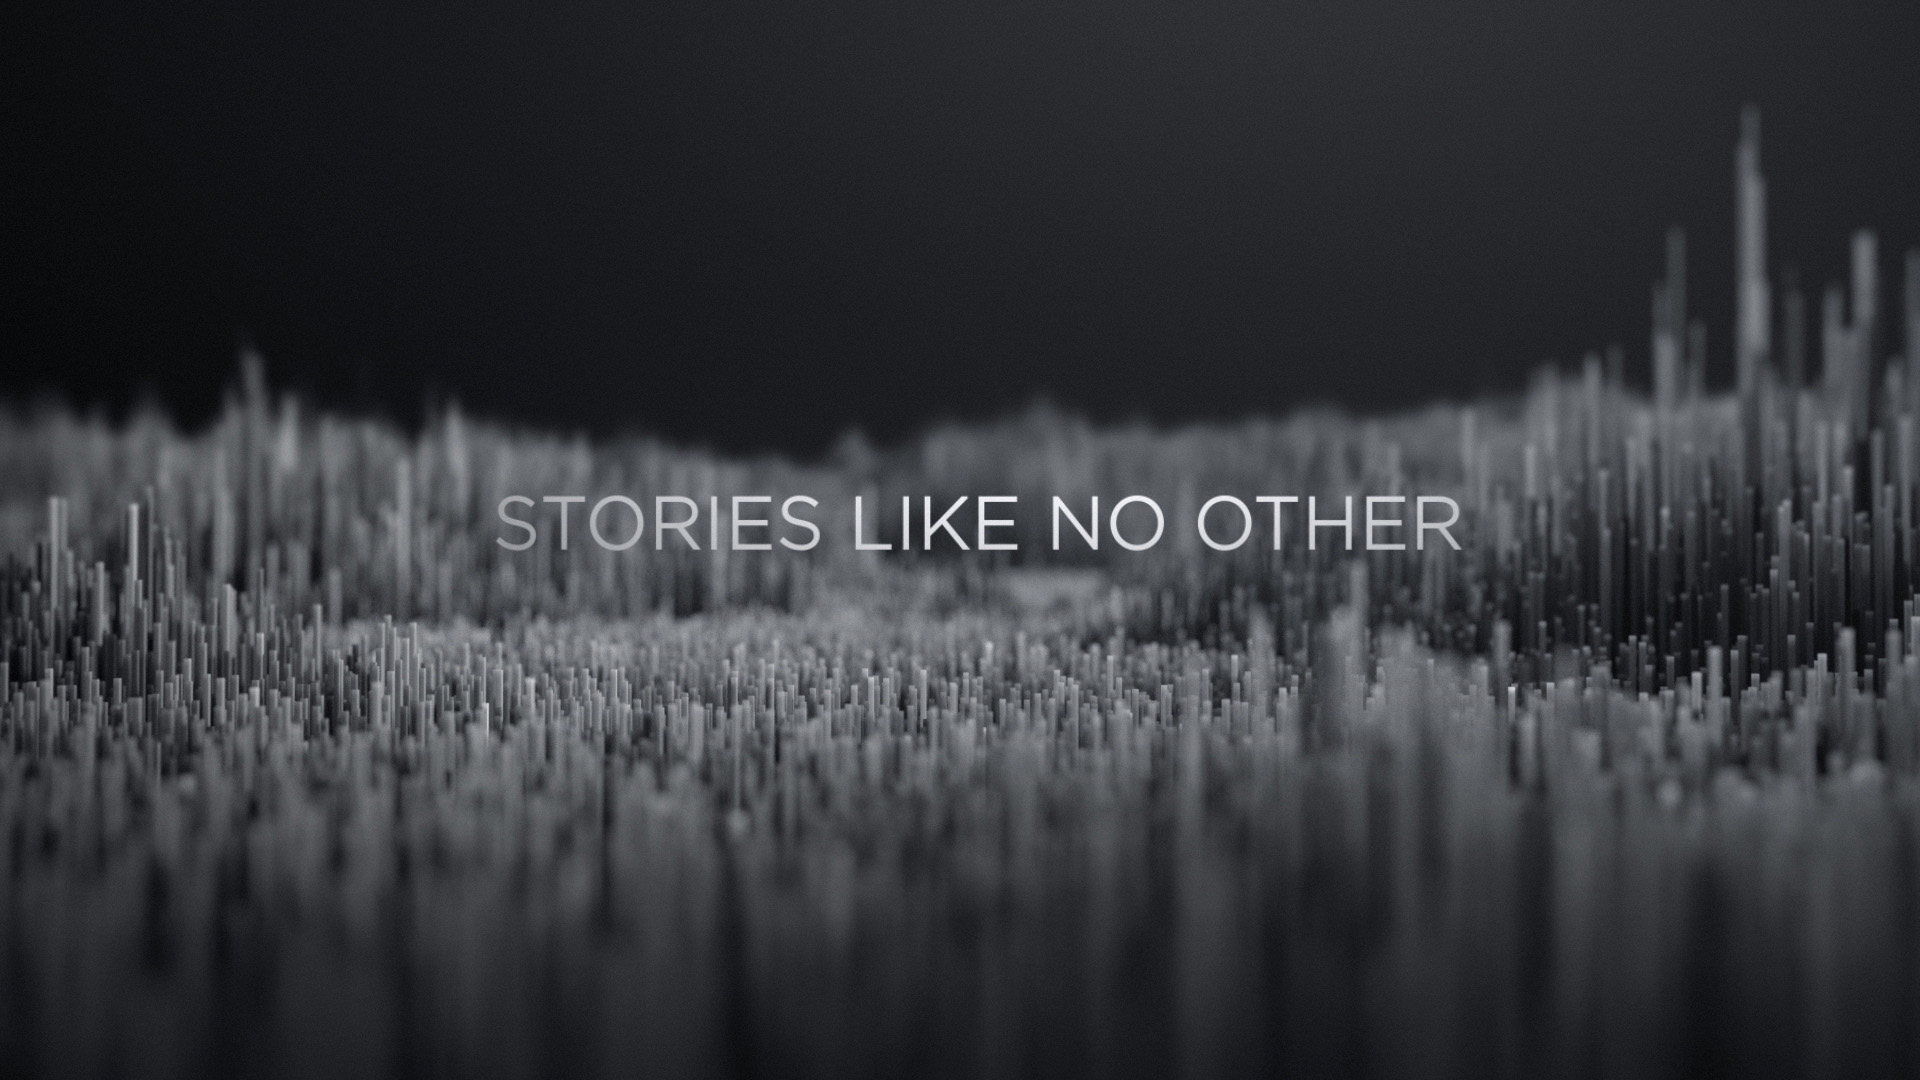 HBO_Story-like-no-other_10